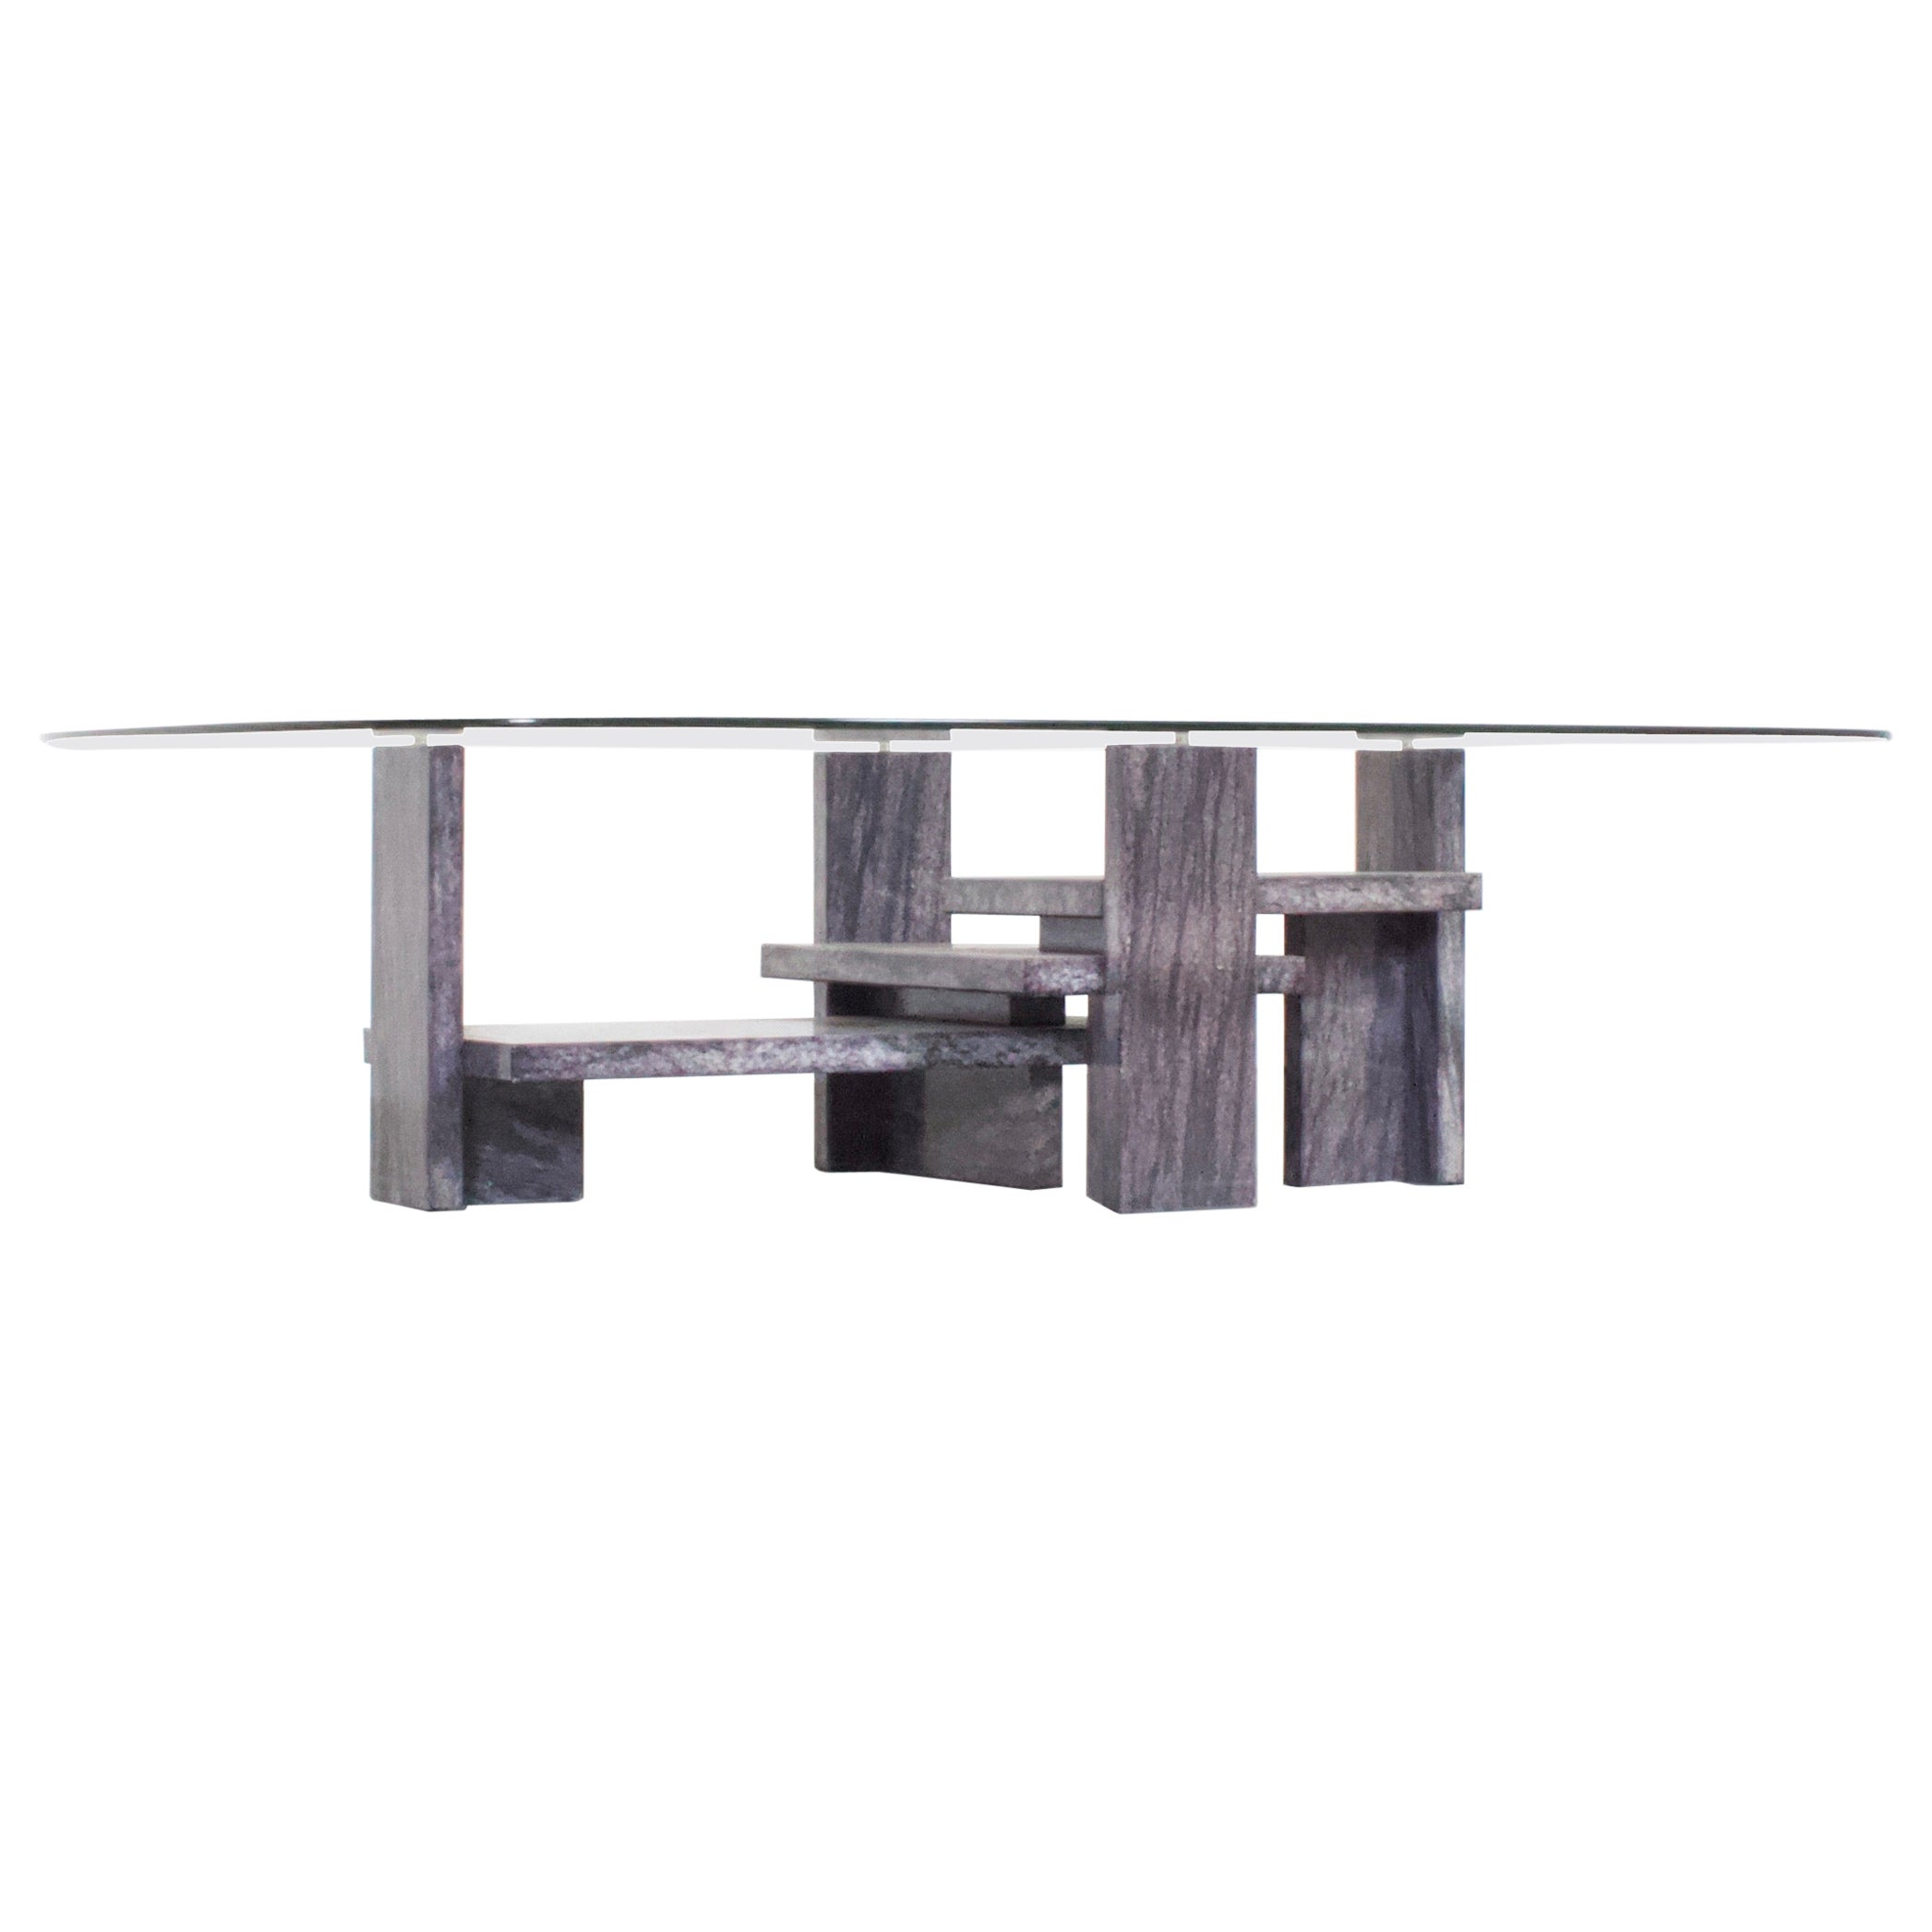 Willy Ballez Marble and Glass Coffee Table, 1970s Belgium